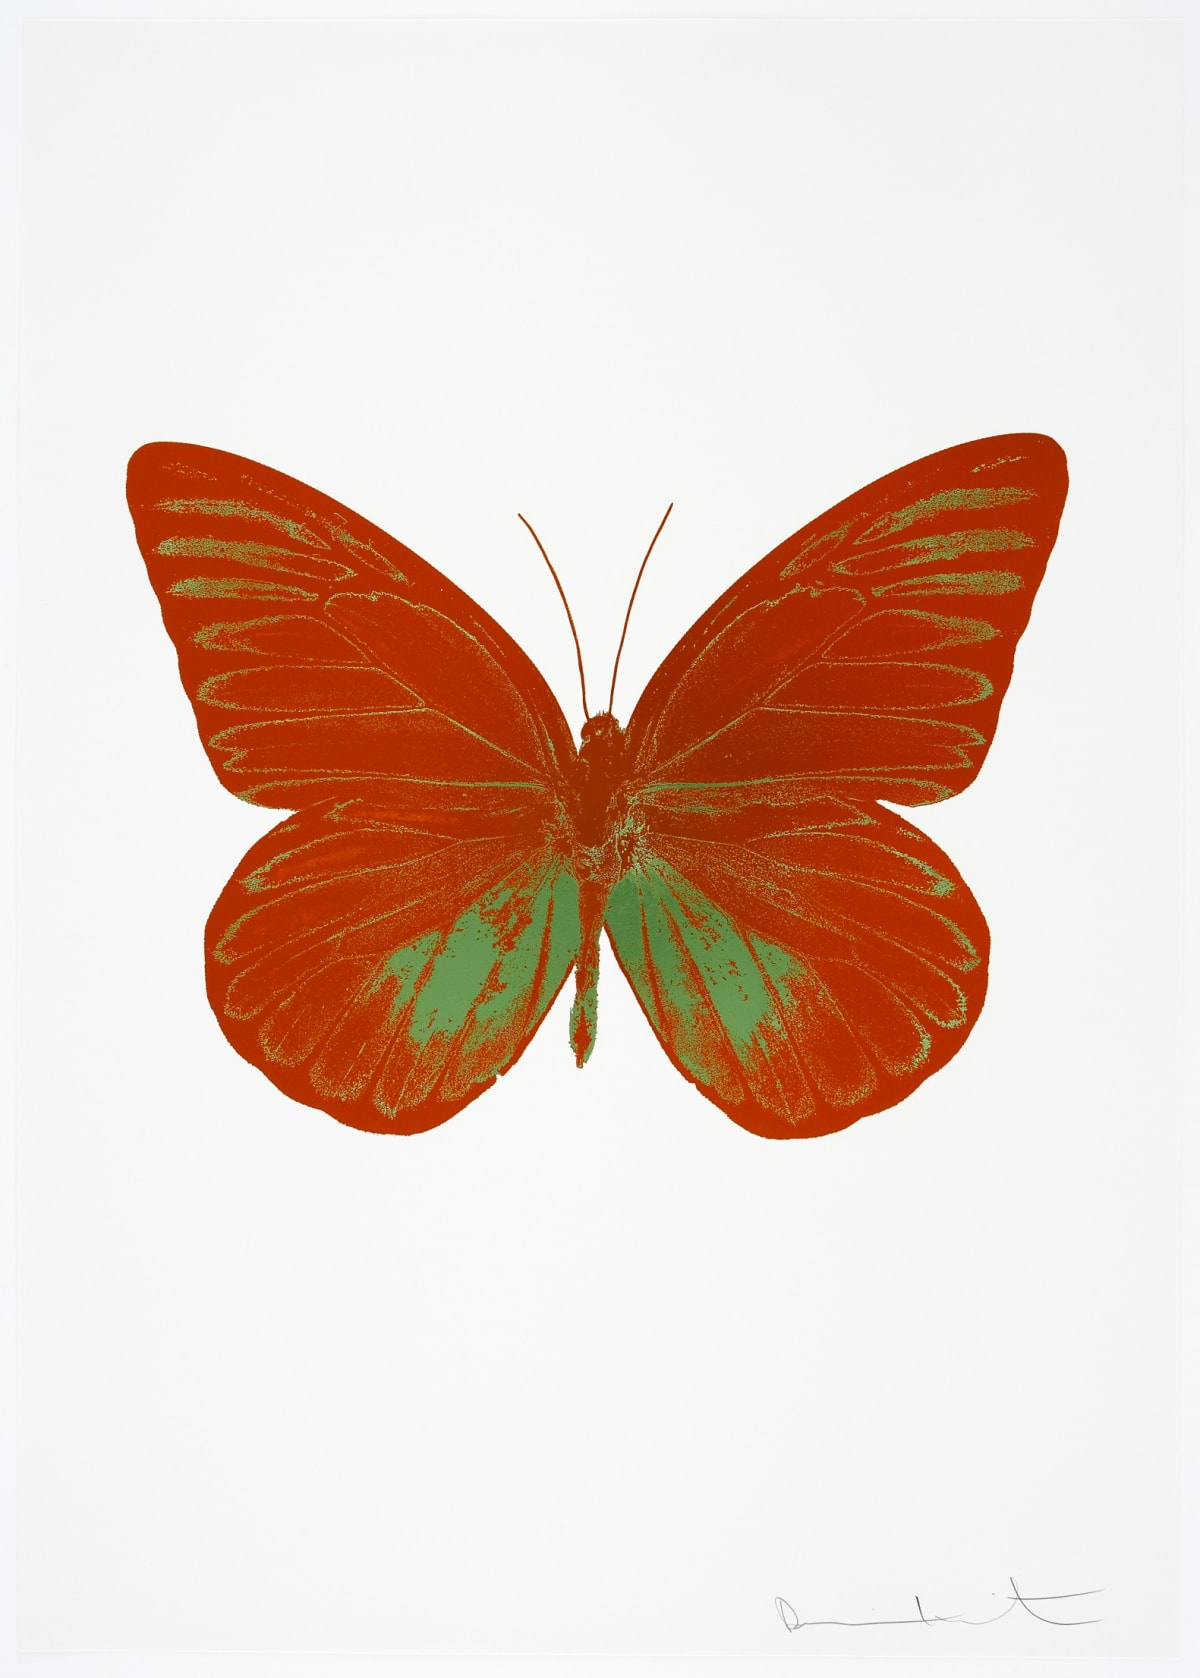 Damien Hirst The Souls I - Prairie Copper/Leaf Green, 2010 2 colour foil block on 300gsm Arches 88 archival paper. Signed and numbered. Published by Paul Stolper and Other Criteria 72 x 51cm OC7773 / 659-36 Edition of 15